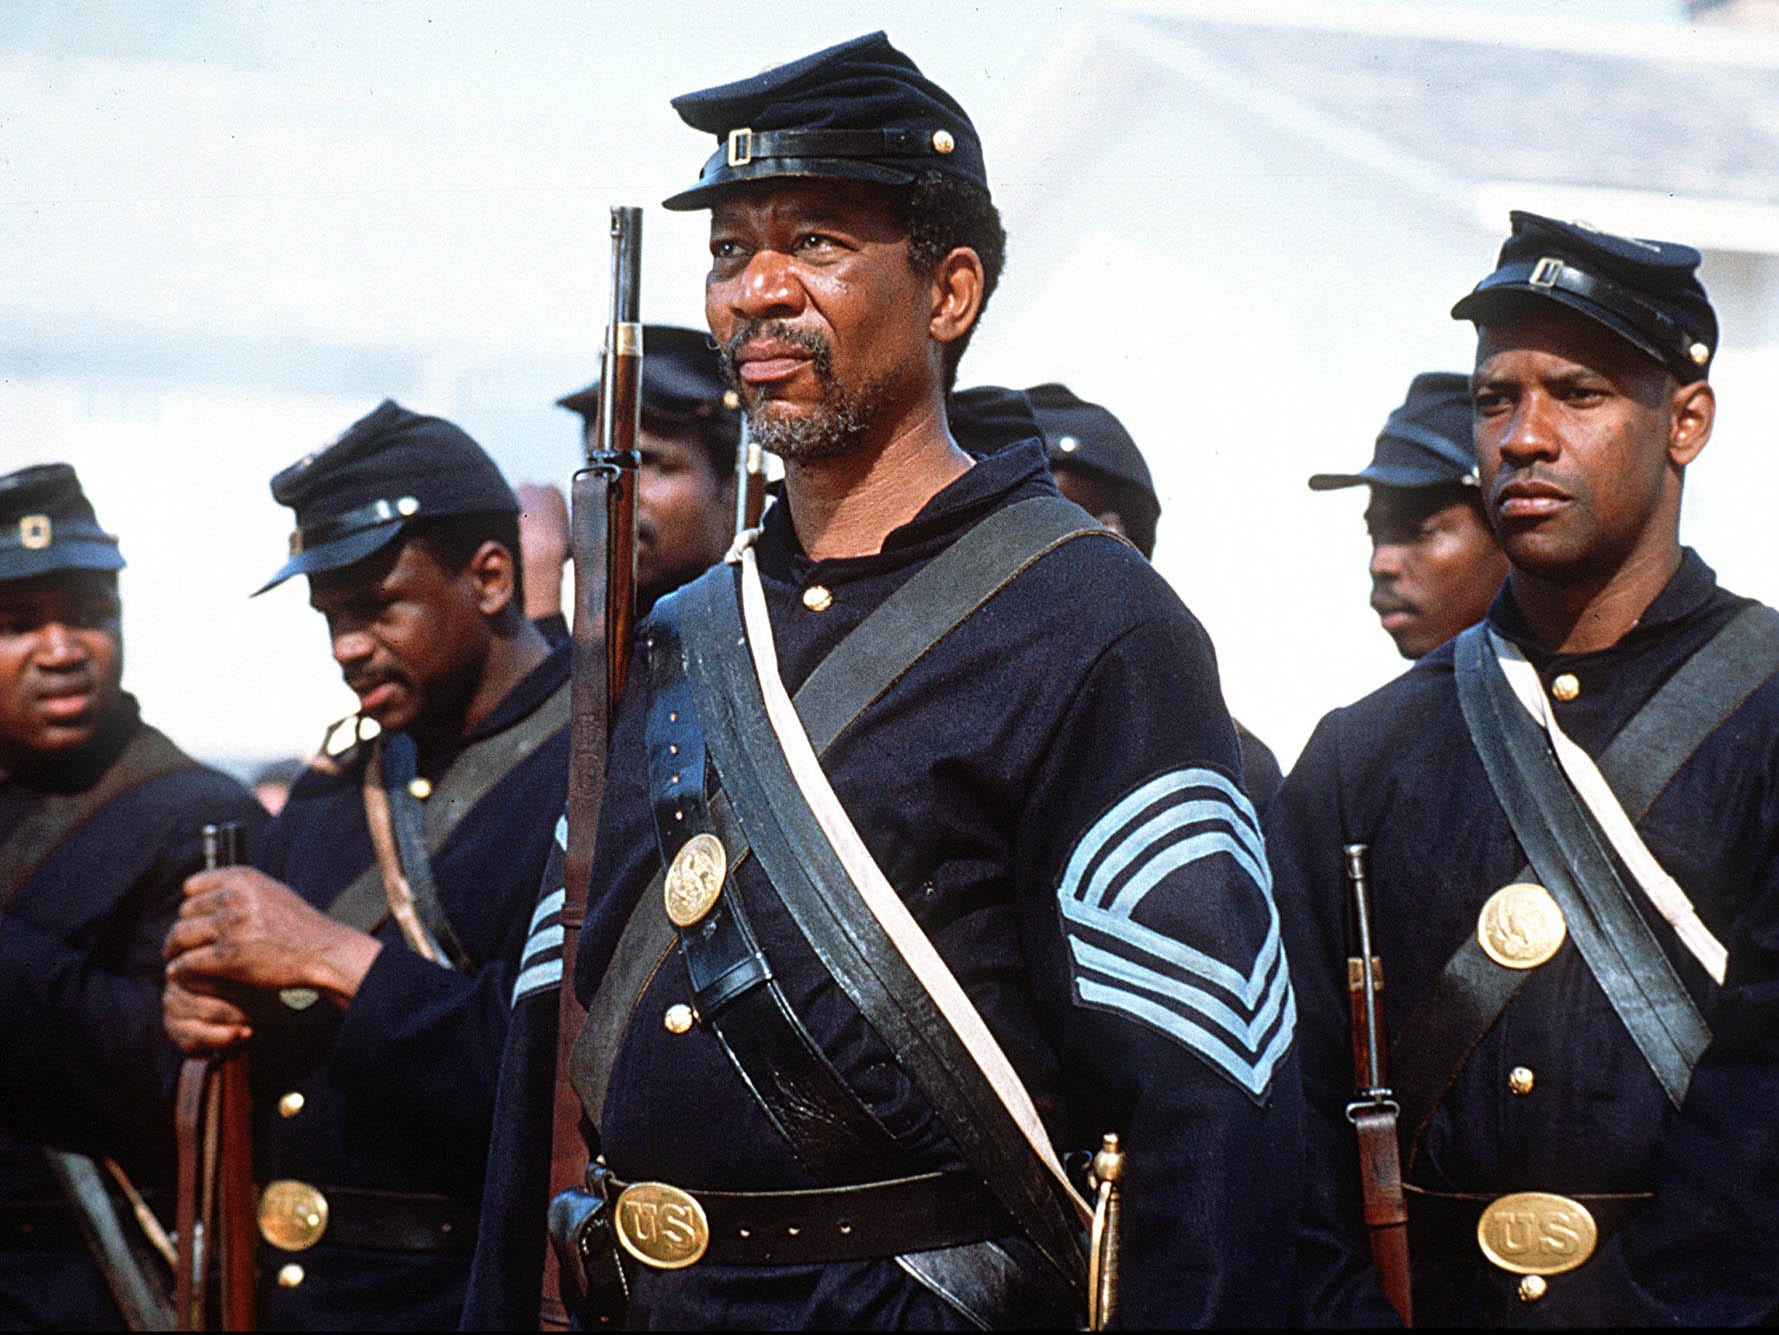 "BLACKHISTORY-DVDS -- Morgan Freeman, center, and Denzel Washington, right, appear in a scene from the motion picture ""Glory."" (Gannett News Service, Merrick Morton/Tri-Star Pictures/File) ORG XMIT: GNS [Via MerlinFTP Drop]"